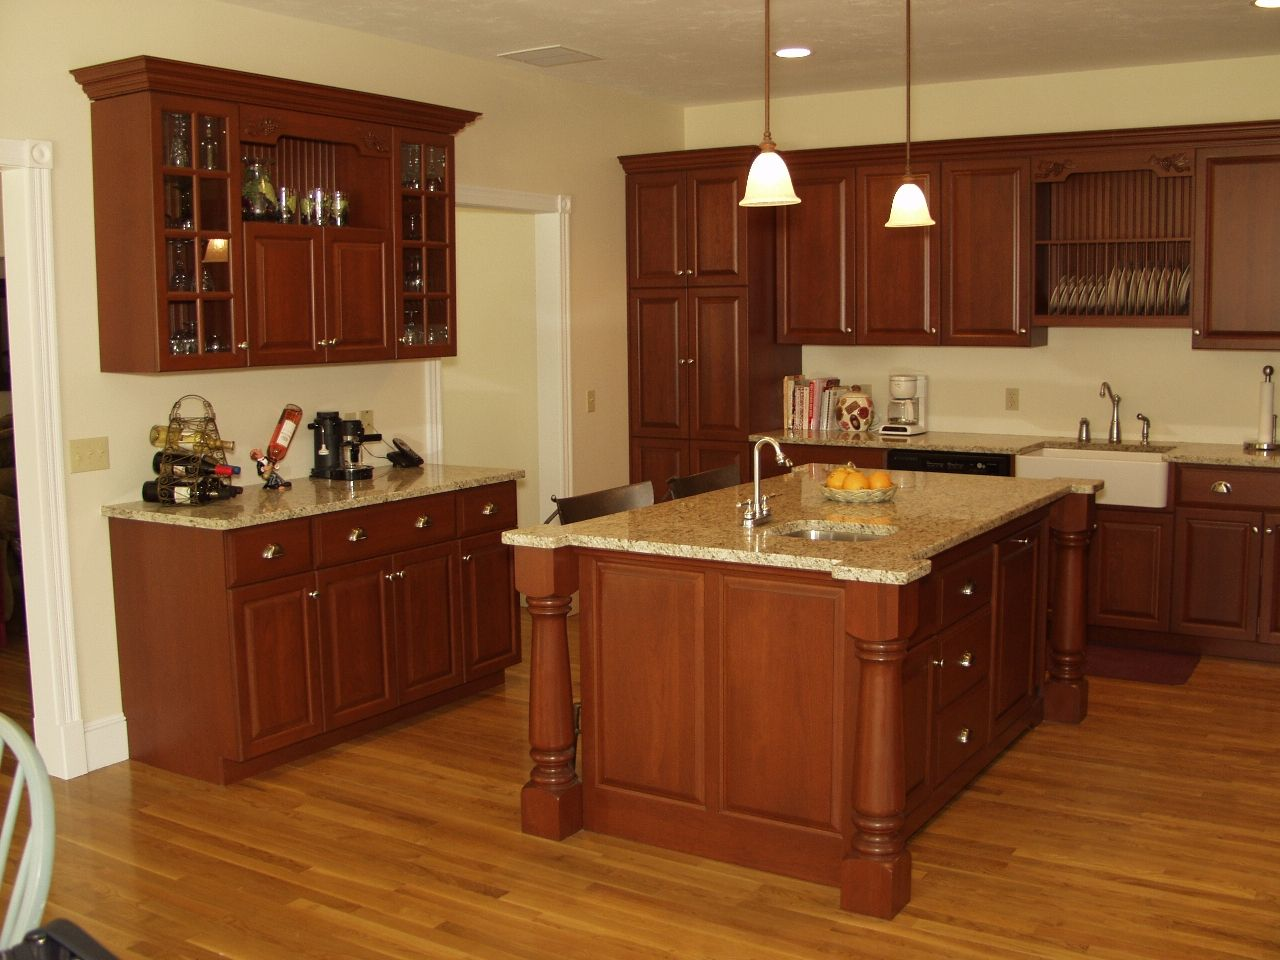 wooden kitchen countertops Kitchen Quartz Countertops With Oak Cabinets Cabinets With White Quartz Countertops Quartz Countertop With Cabinet